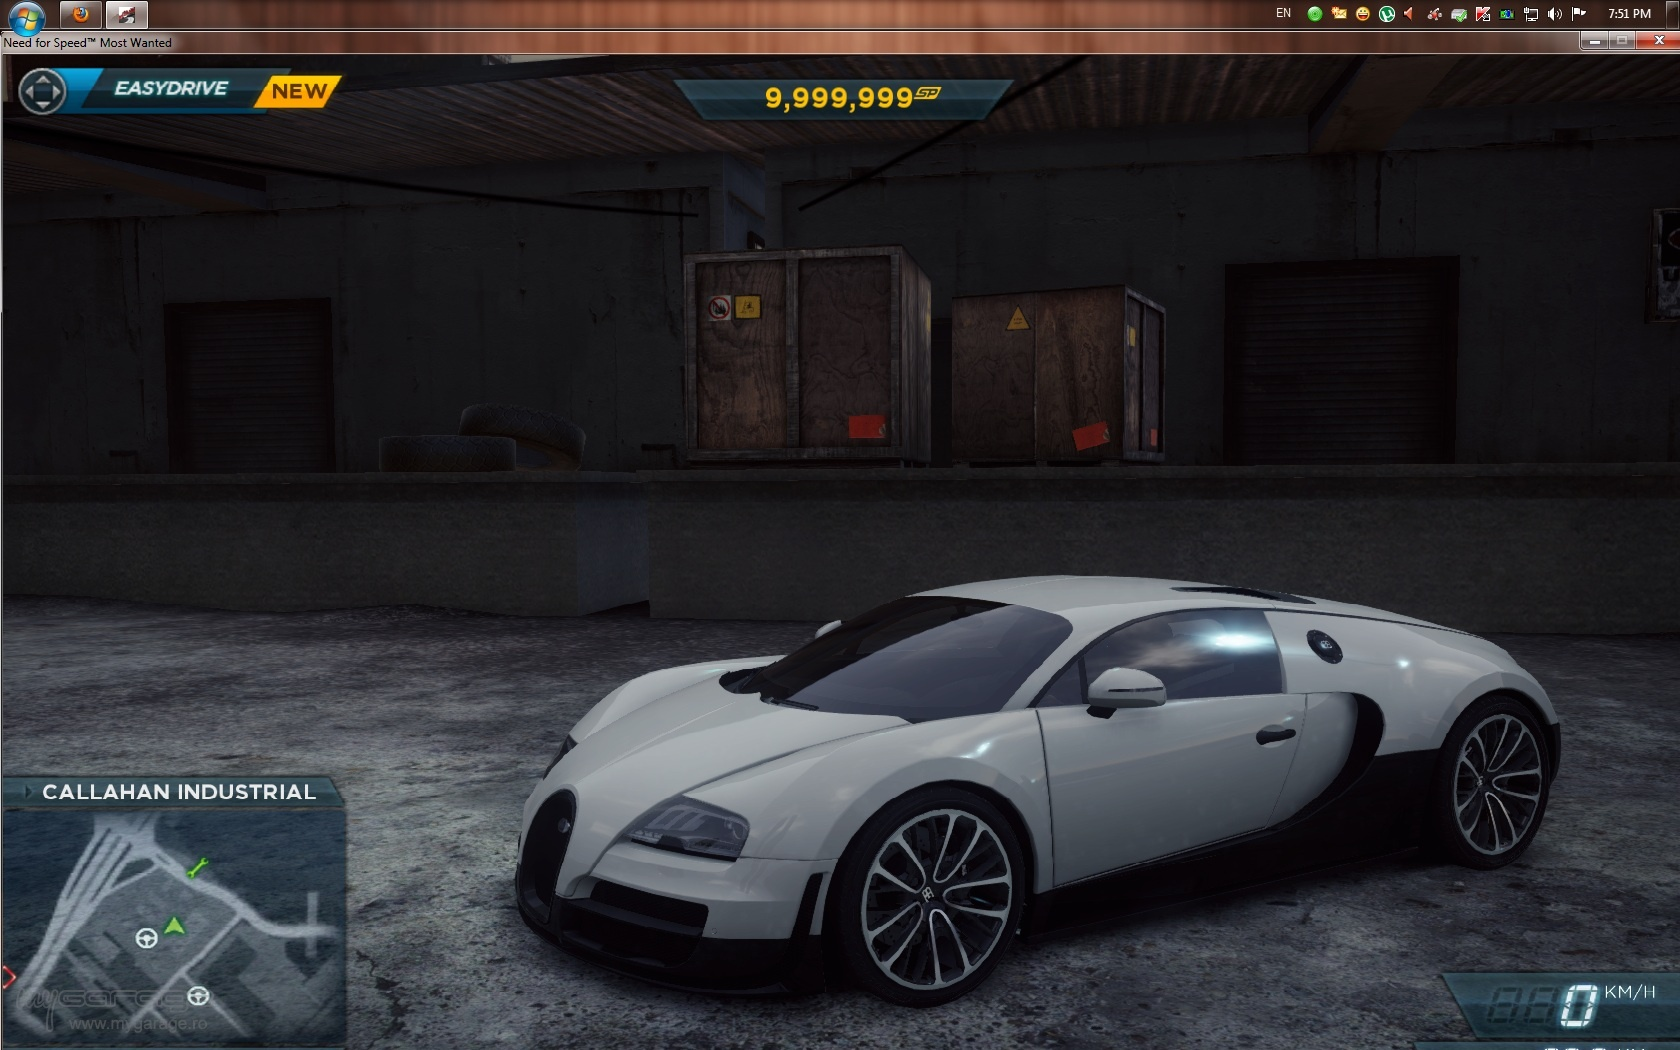 2020 Other | Images: Need For Sd Most Wanted 2017 Bugatti Location